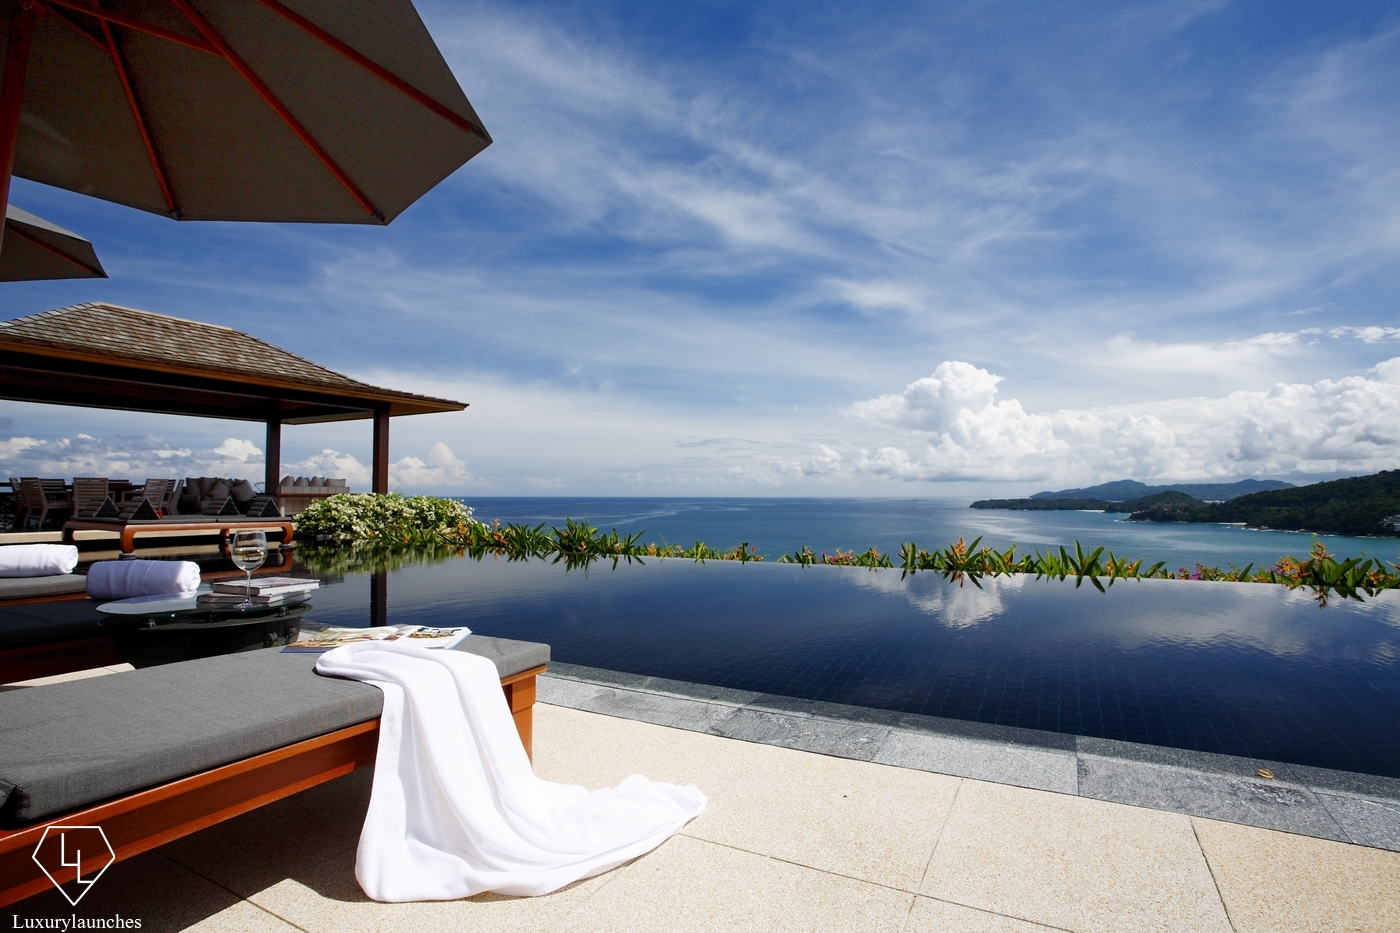 Top 8 most beautiful luxury villas in thailand 2017 for Villas with infinity pools